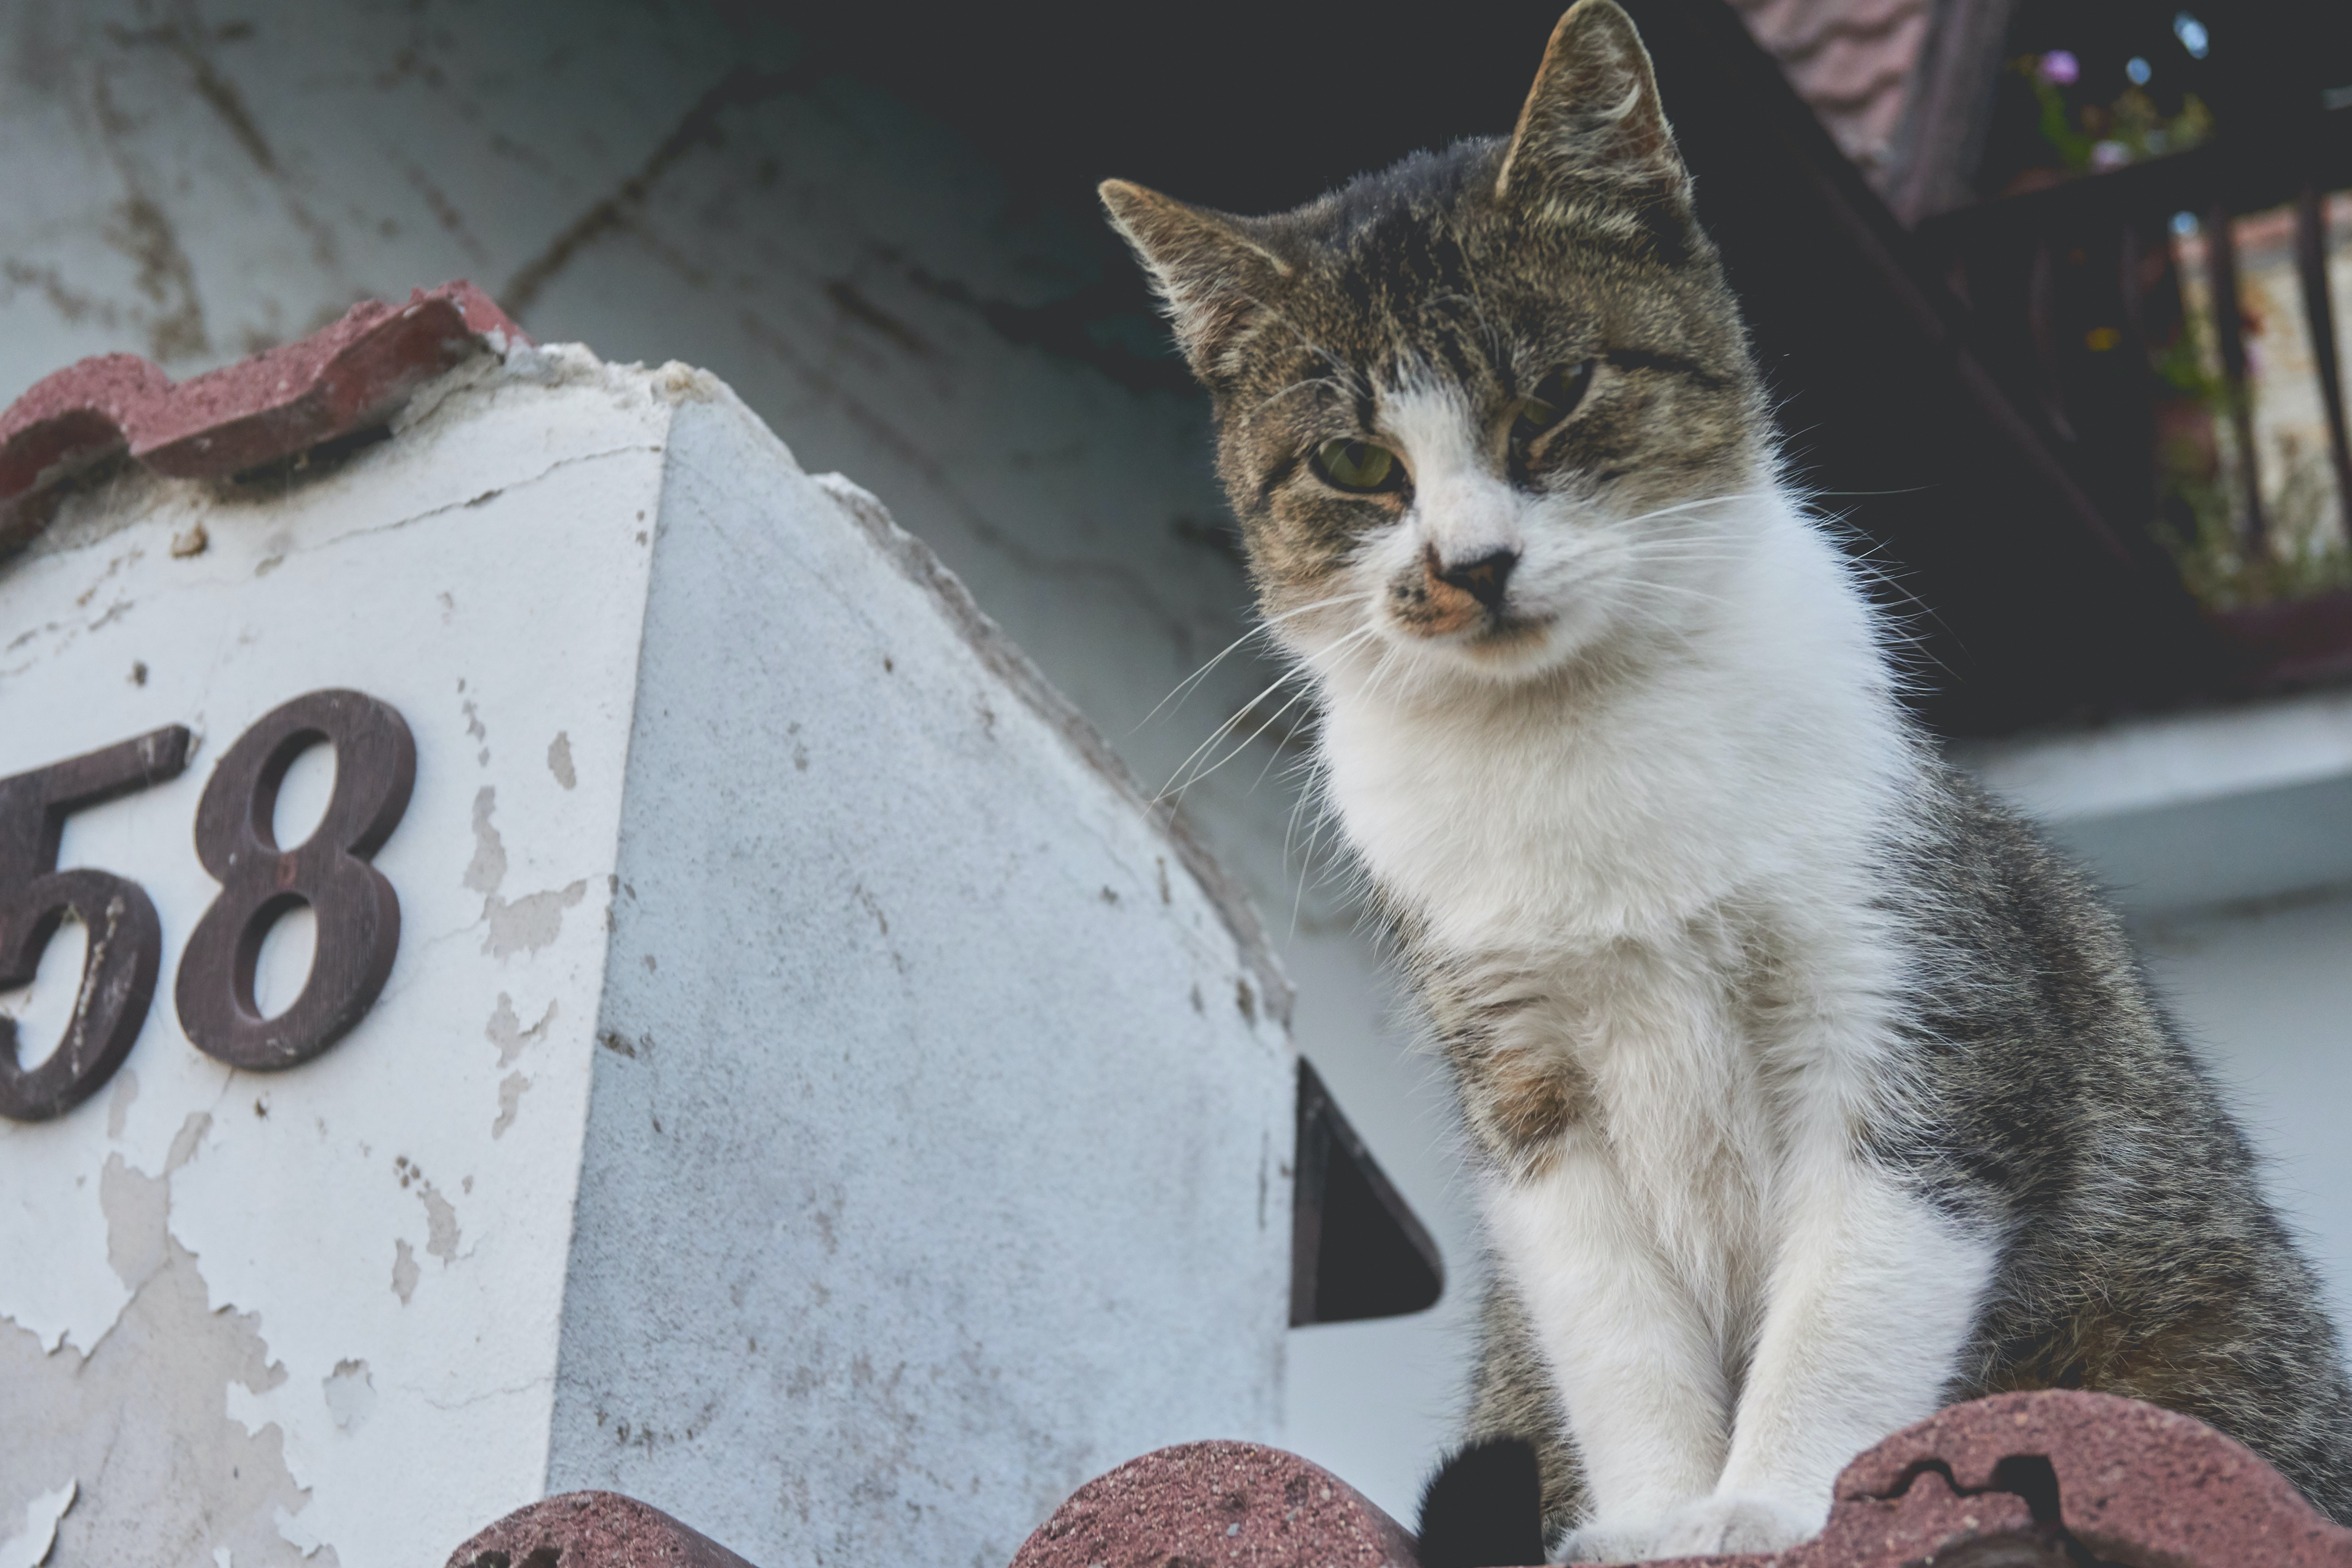 White And Gray Cat On Brown Roof 183 Free Stock Photo